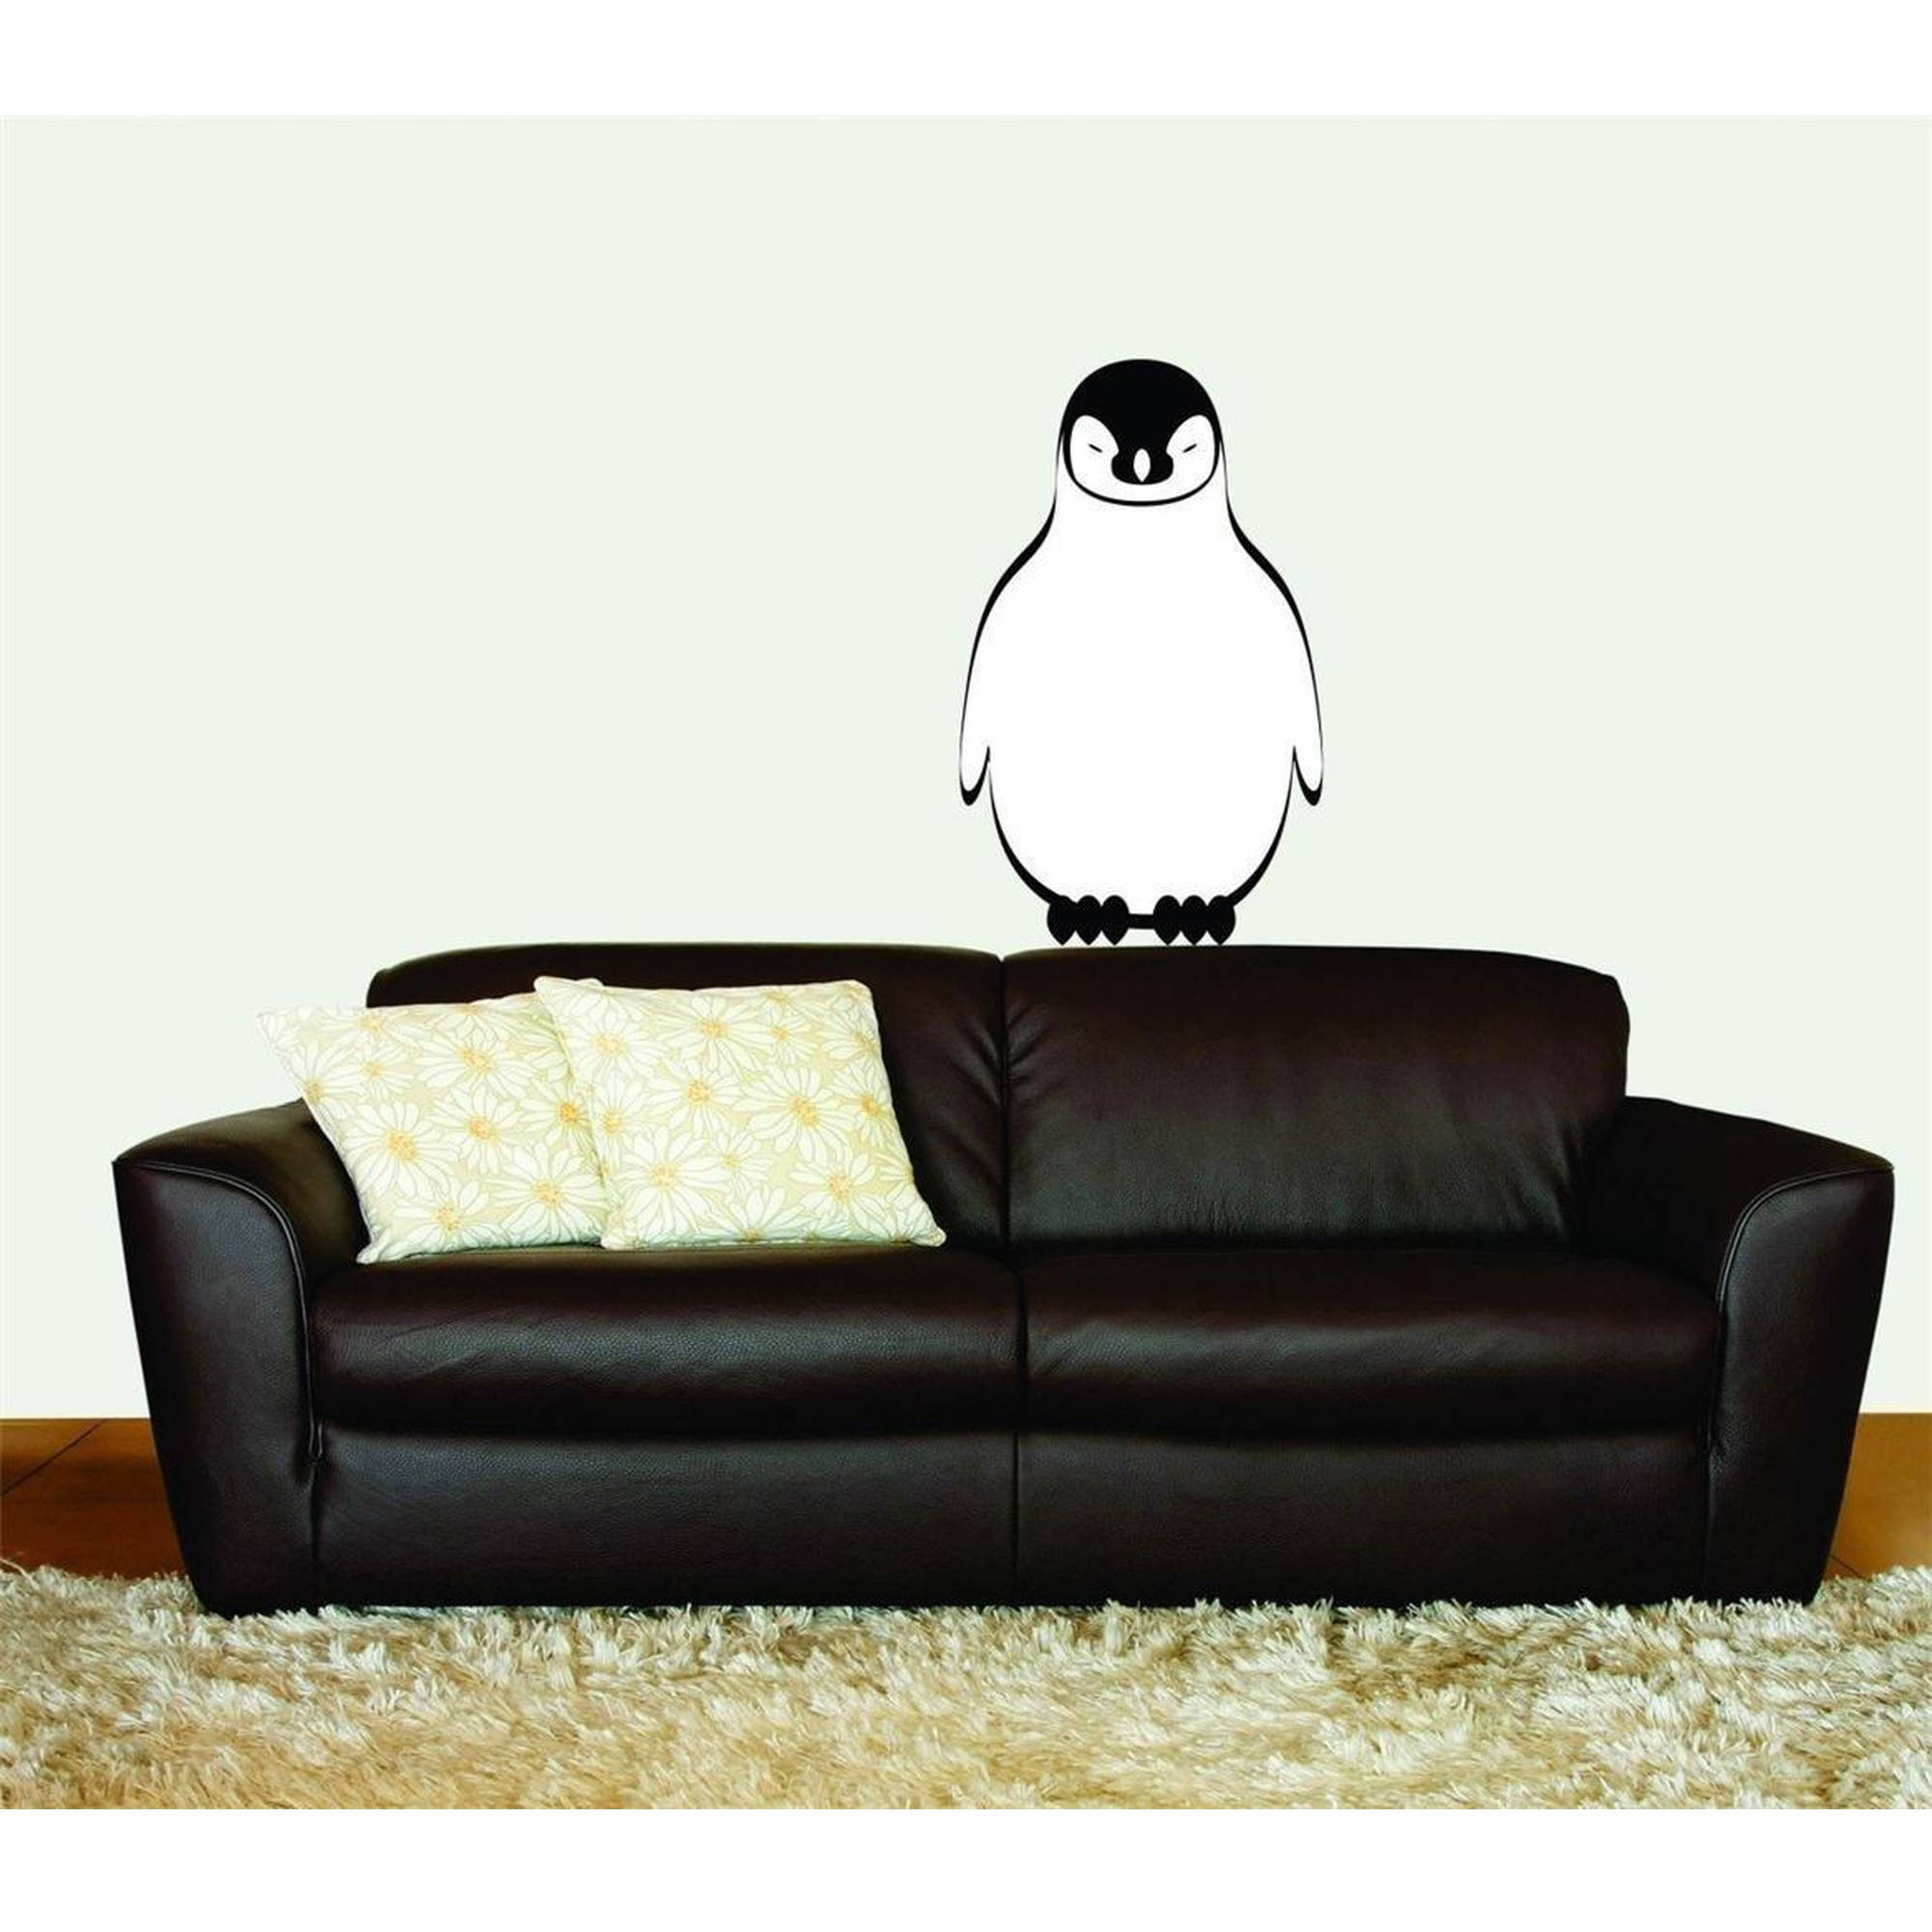 "Penguin Animal Vinyl Wall Decal Picture Art, 12"" x 20"", Black and White"